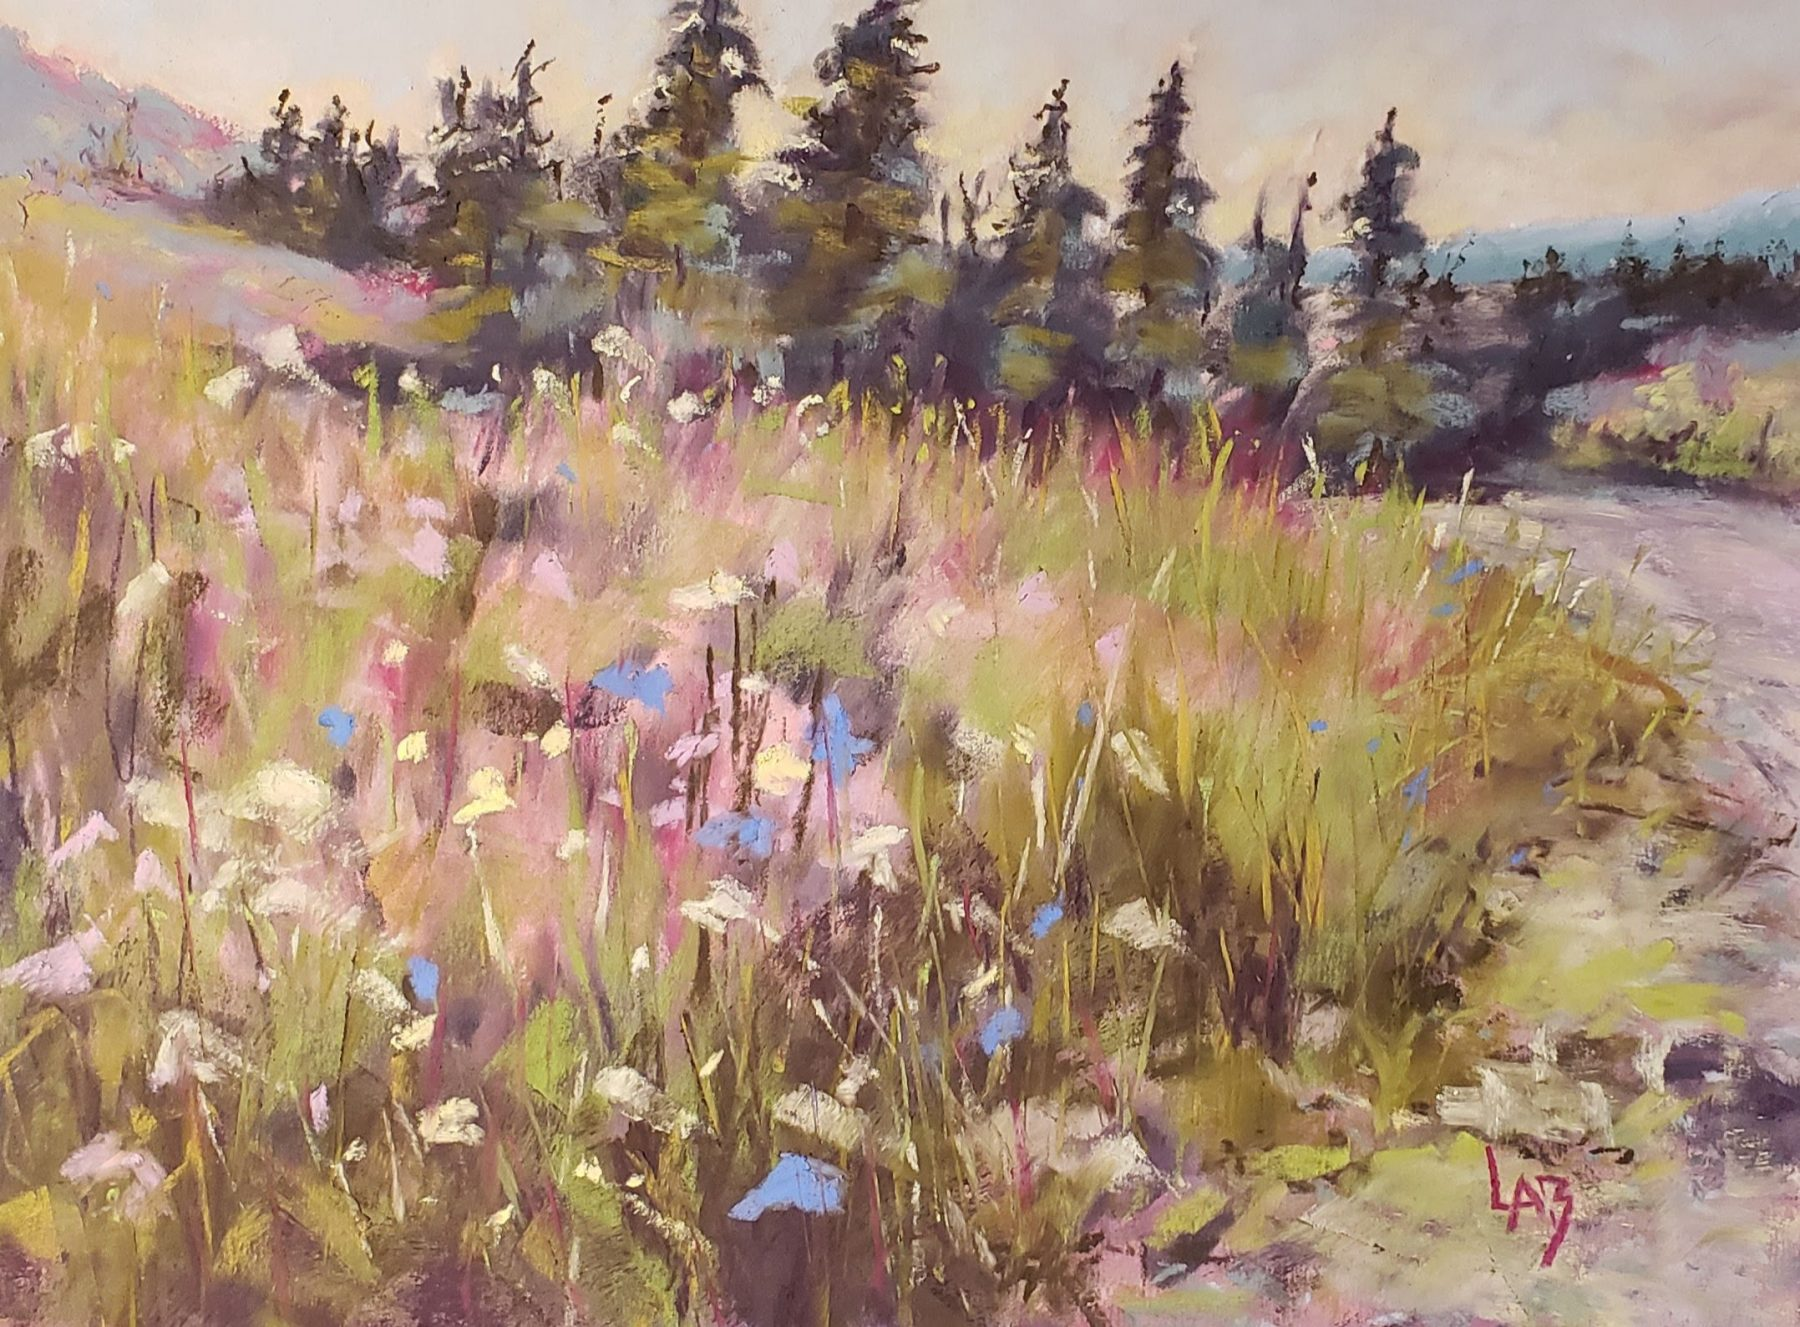 Police Outlet in July - Soft Pastel Painting by Lynda Baxter